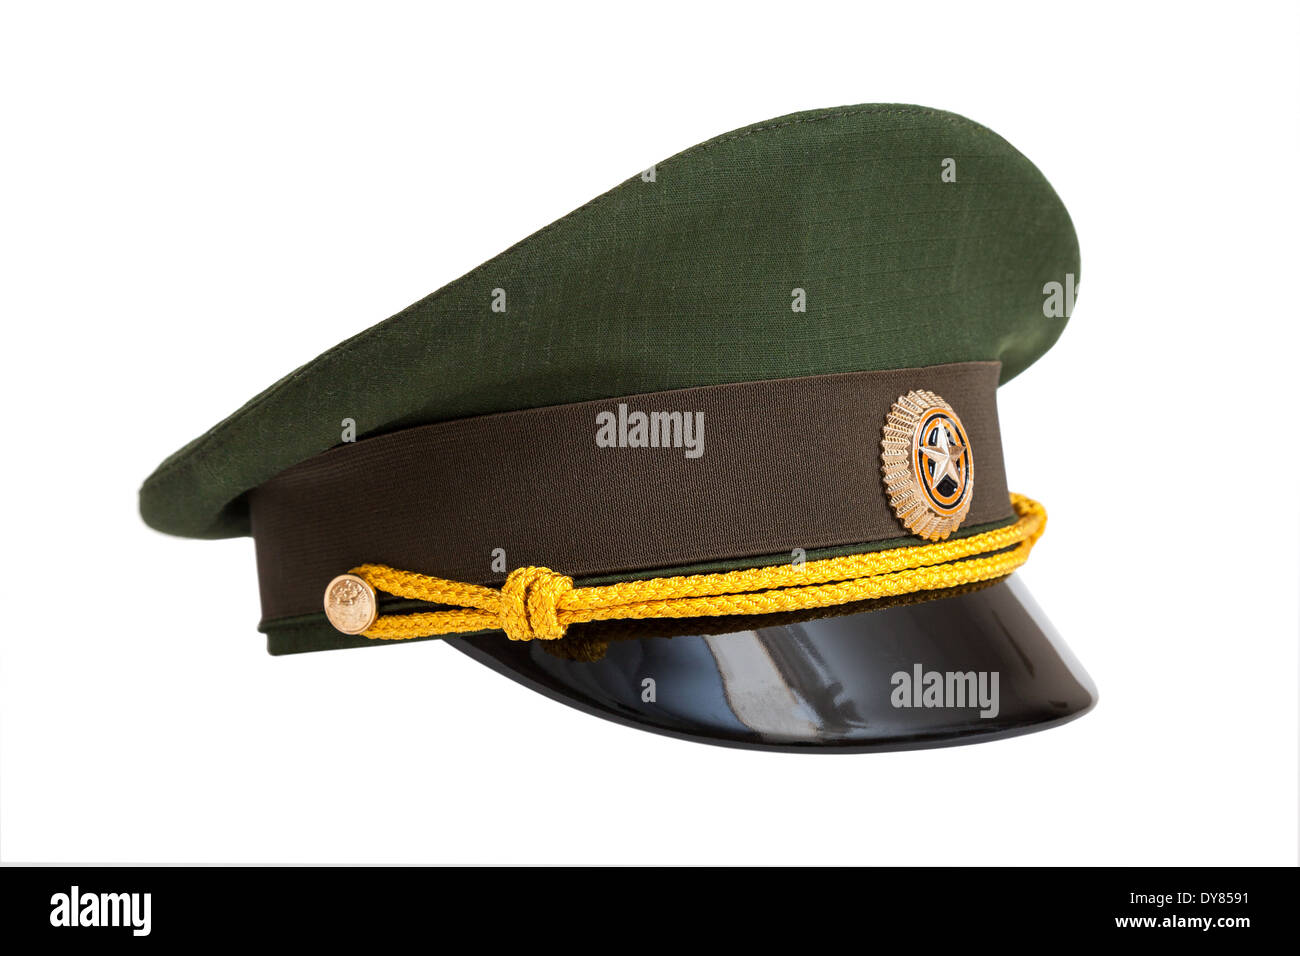 b87761546015f Cap of Russian army officer isolated on white background - Stock Image